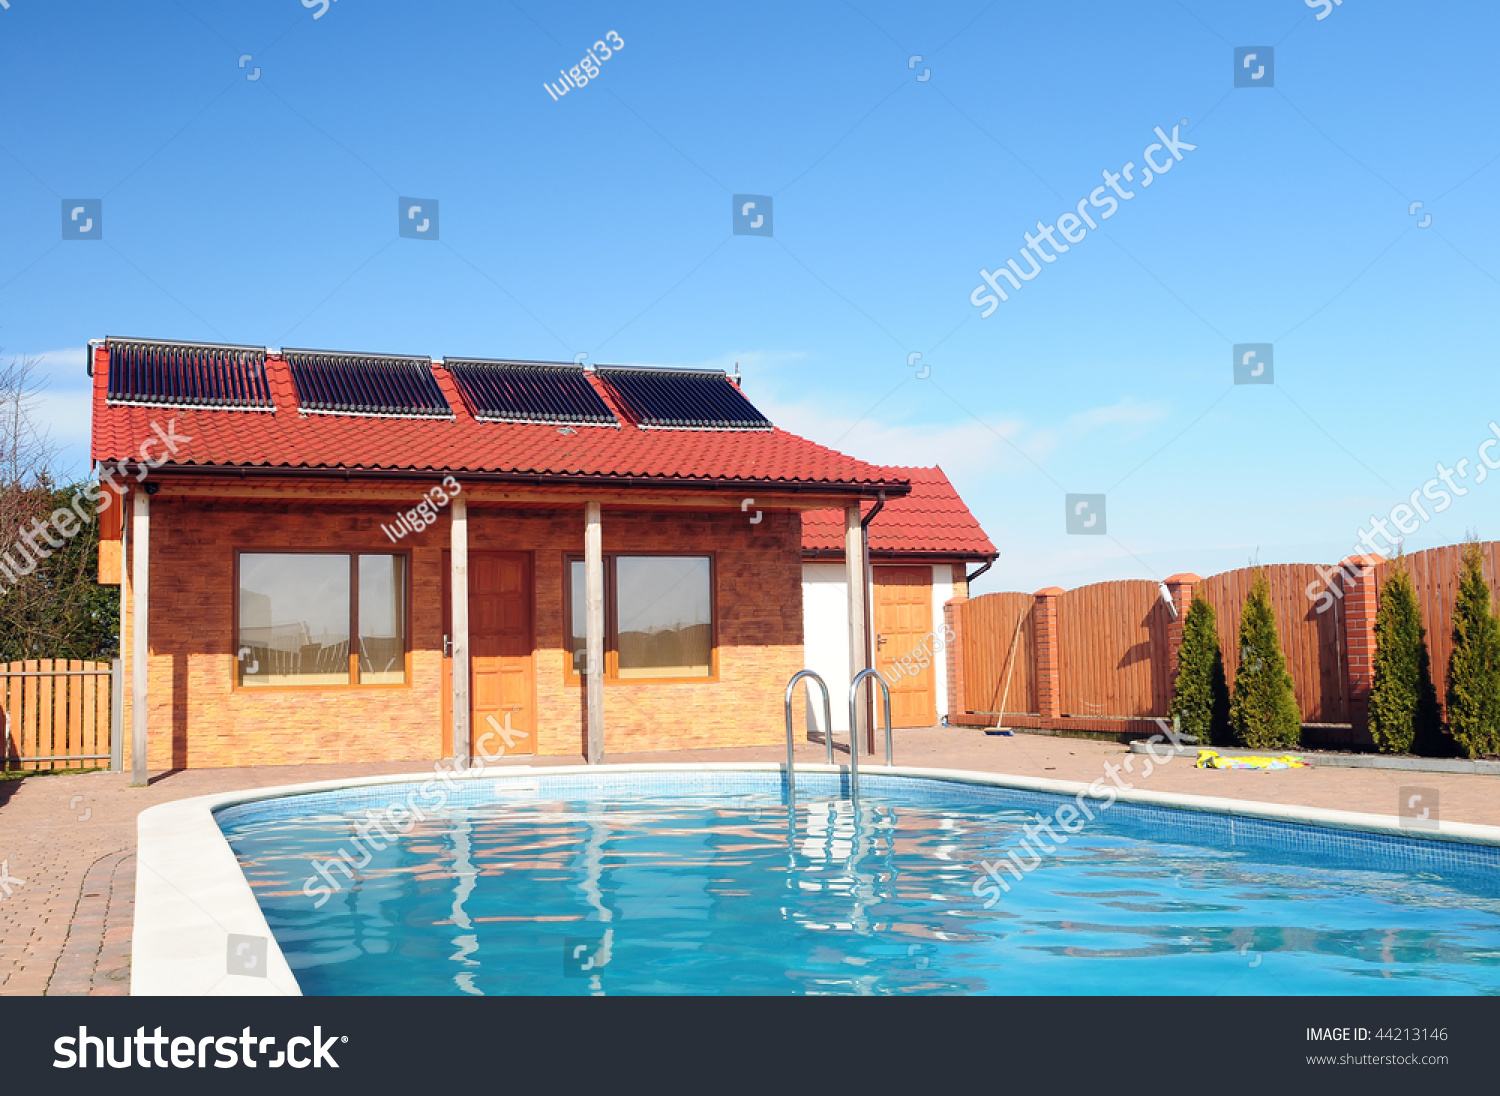 Swimming Pool In Front Of Small Bungalow With Solar Panels On Roof